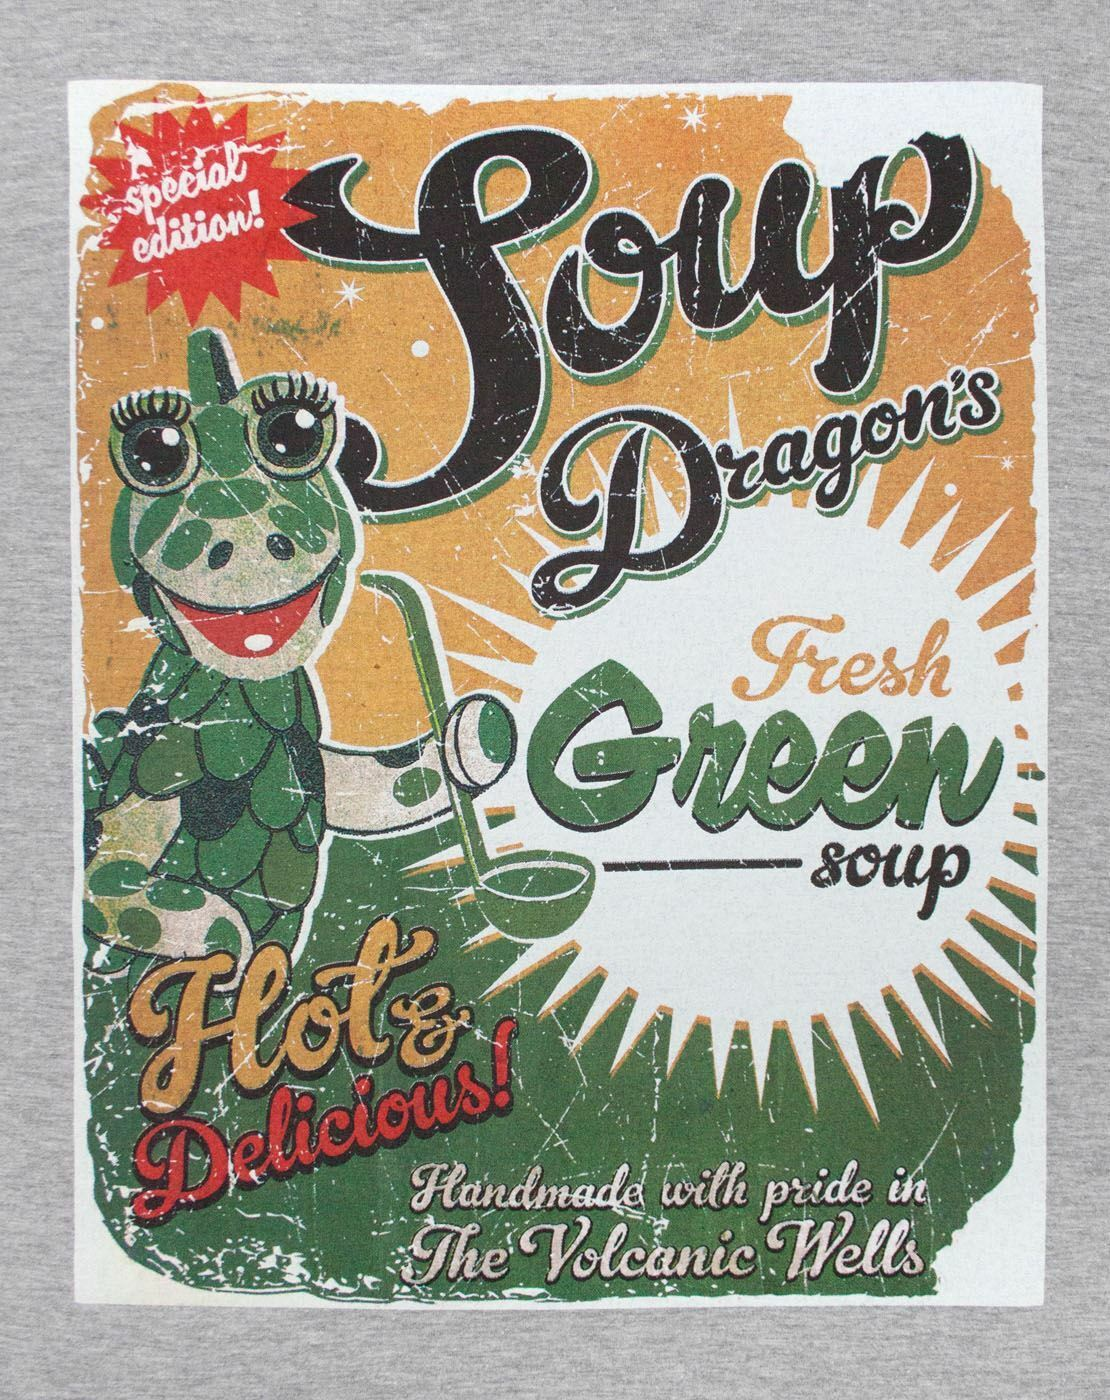 thumbnail 6 - Clangers-Soup-Dragons-Green-Soup-Women-039-s-T-Shirt